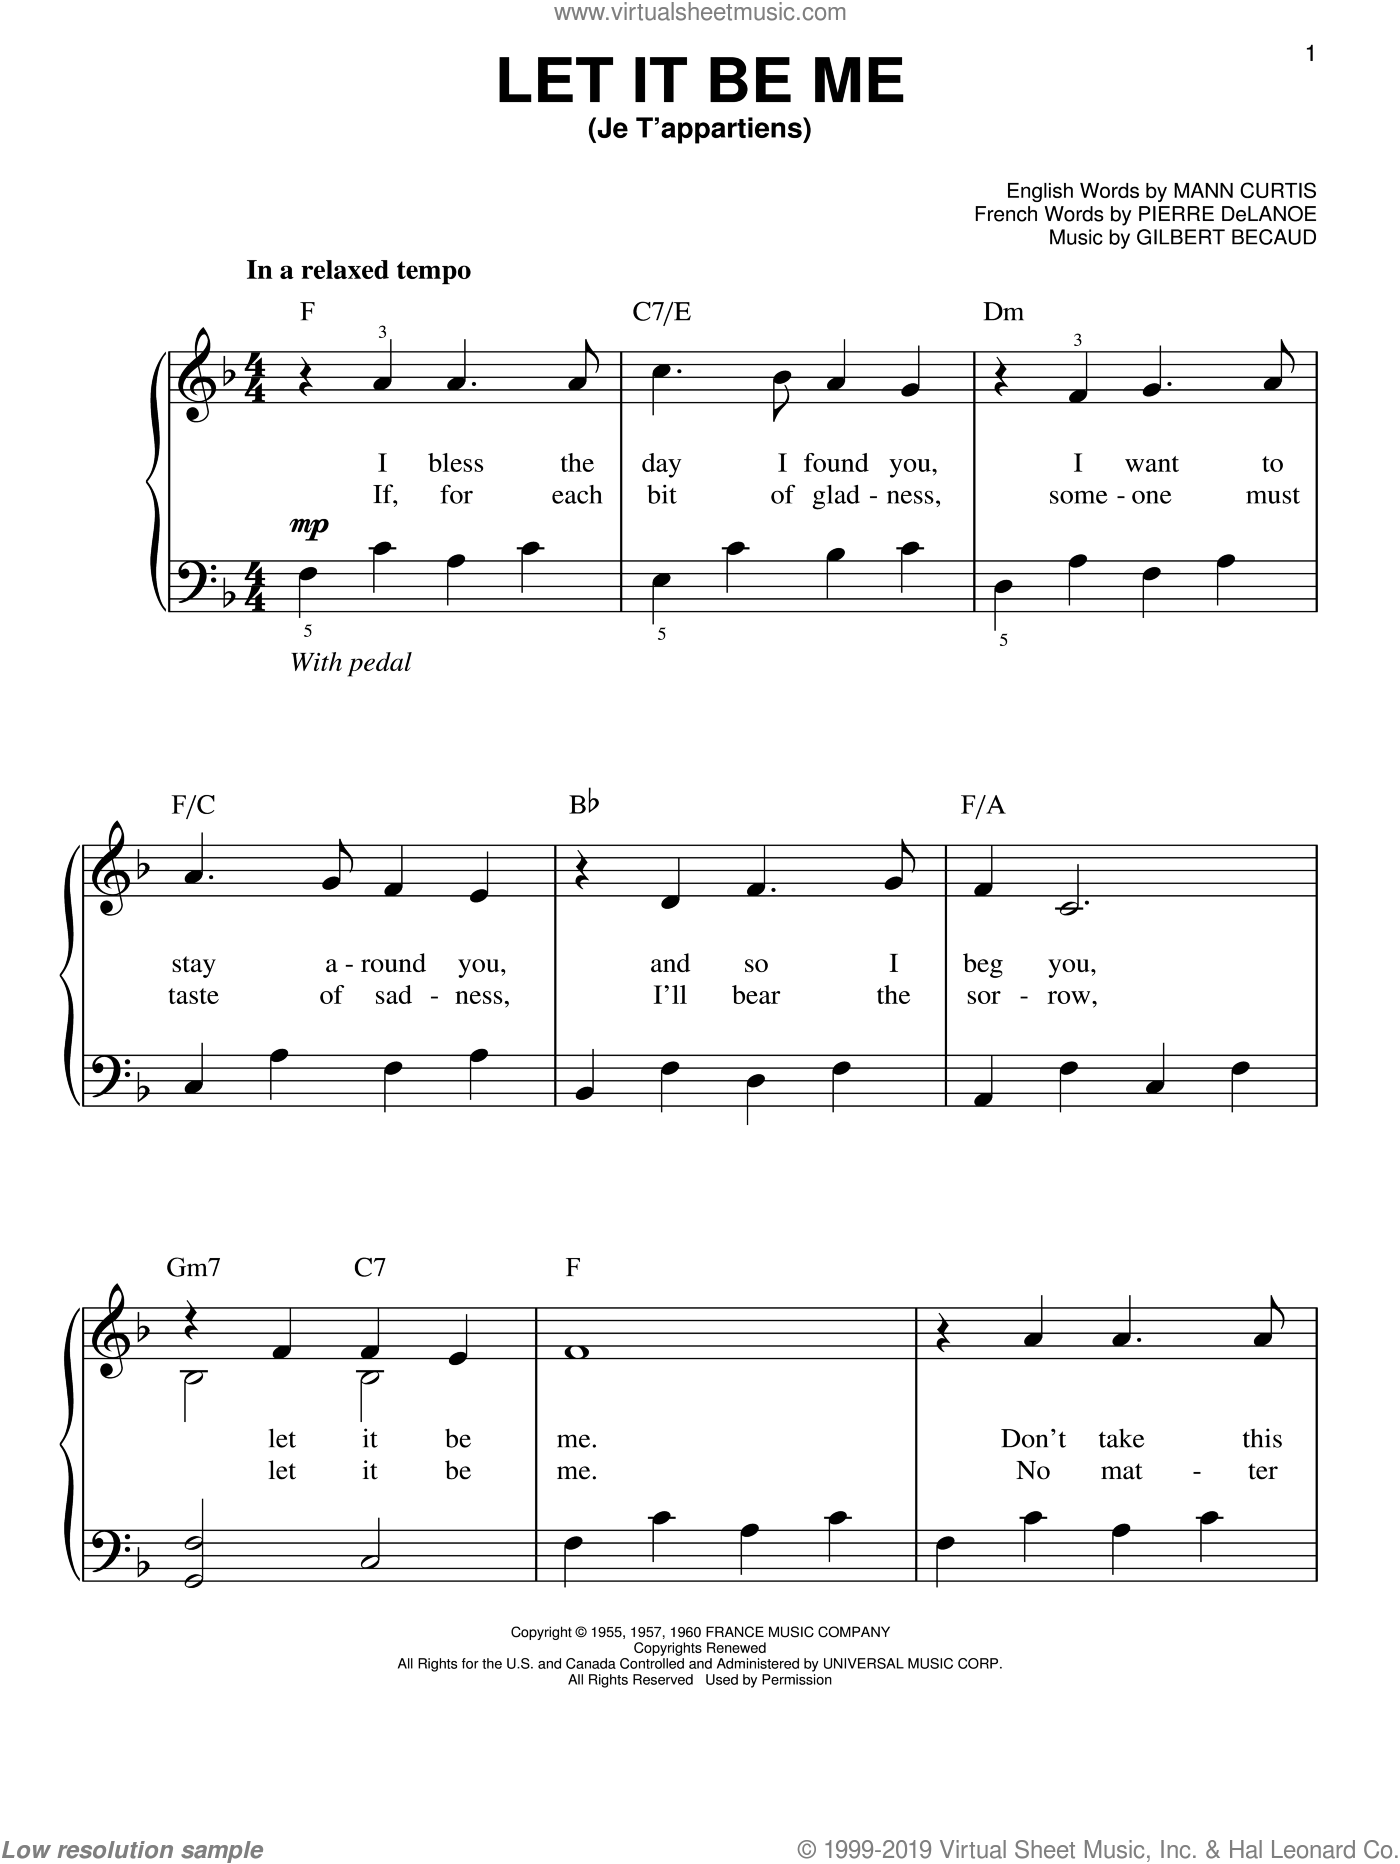 Let It Be Me (Je T'appartiens) sheet music for piano solo by Elvis Presley, Gilbert Becaud, Mann Curtis and Pierre Delanoe, wedding score, easy skill level